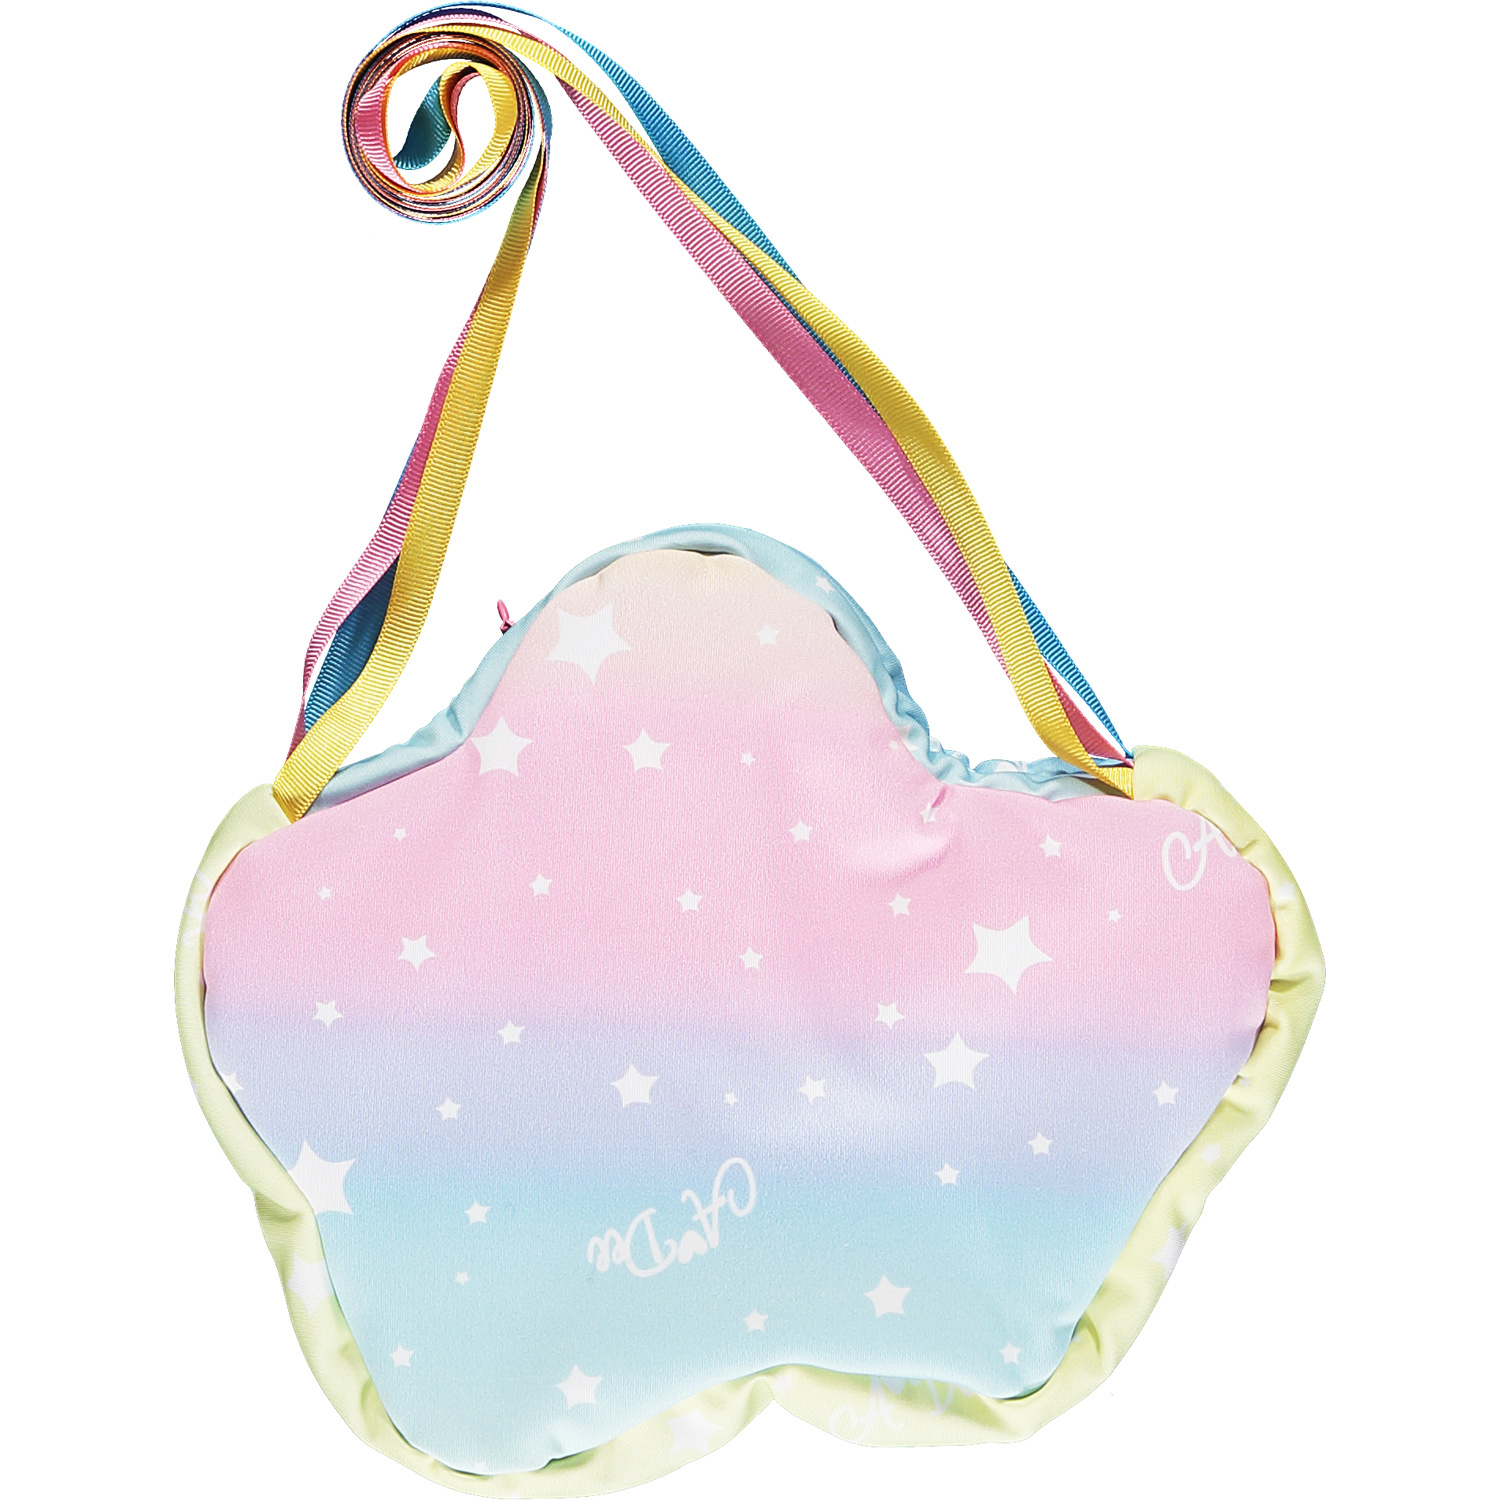 Adee Adee Nats Rainbow Bag